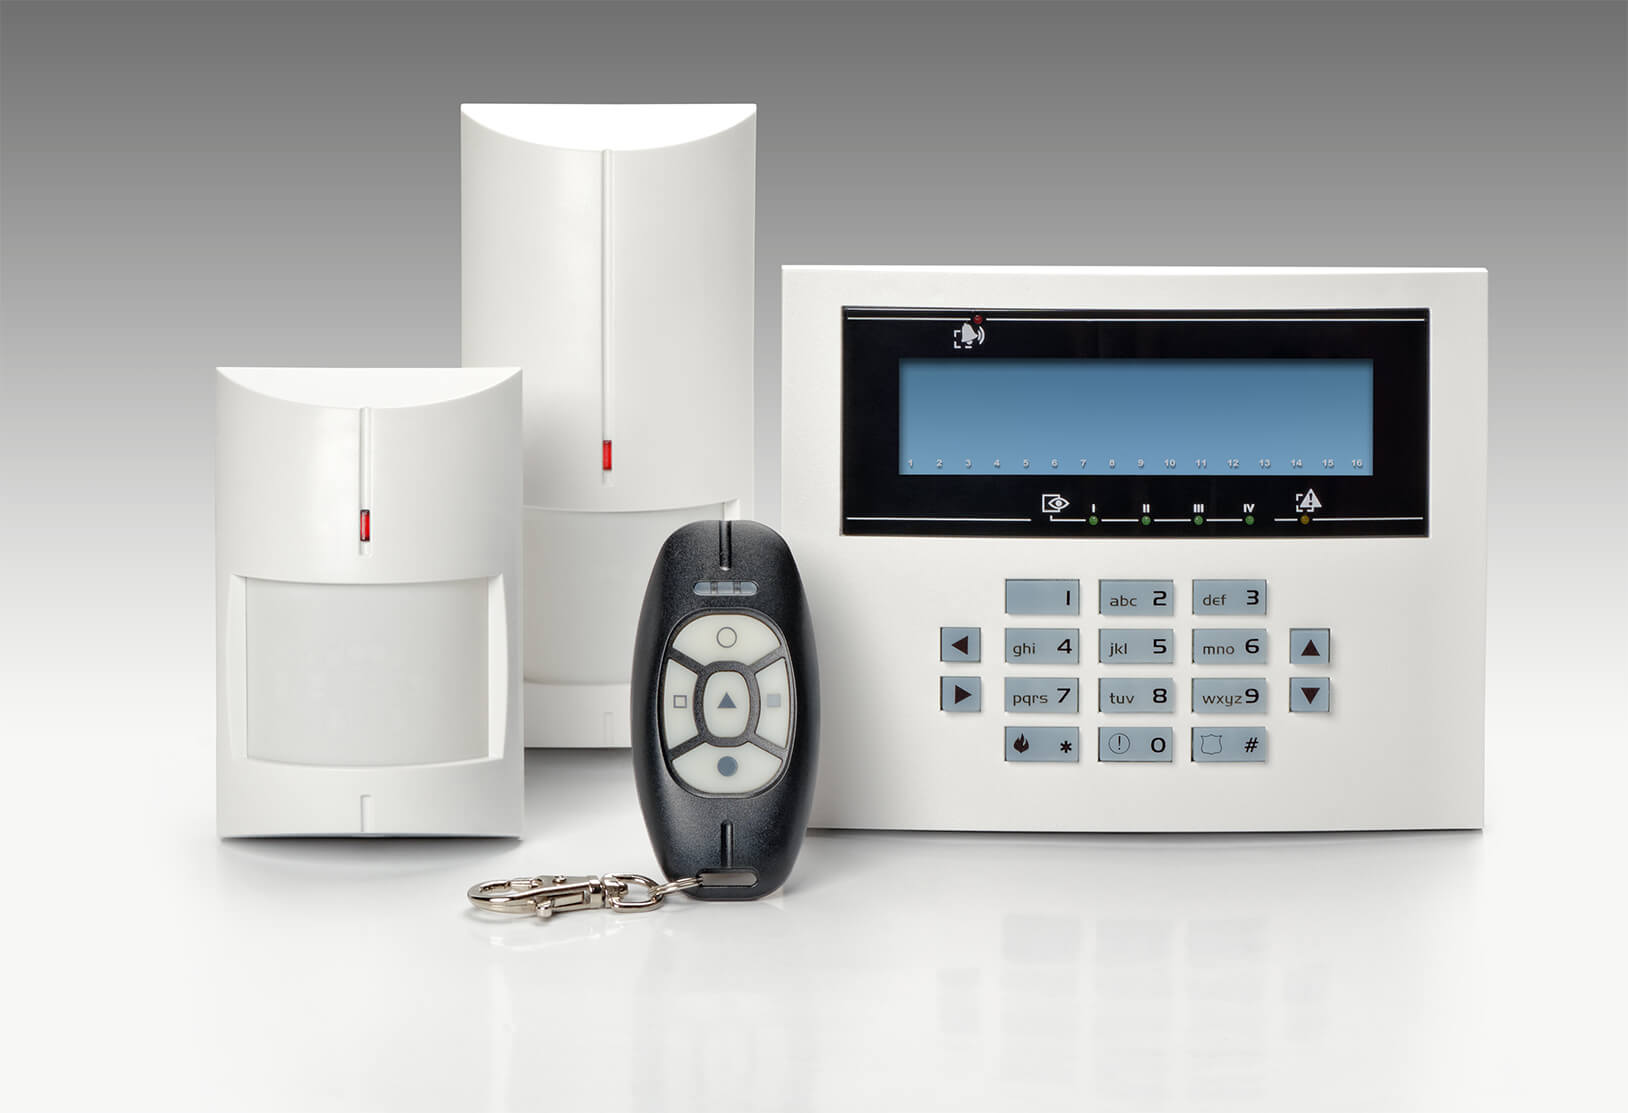 Business & Residential NACOSS Approved Burglar Alarms In Fenchurch Street EC3 - Local Fenchurch Street EC3 security company.Call 02078872244 - Dedicated to Safety & Security. Companies, shops and homes ..